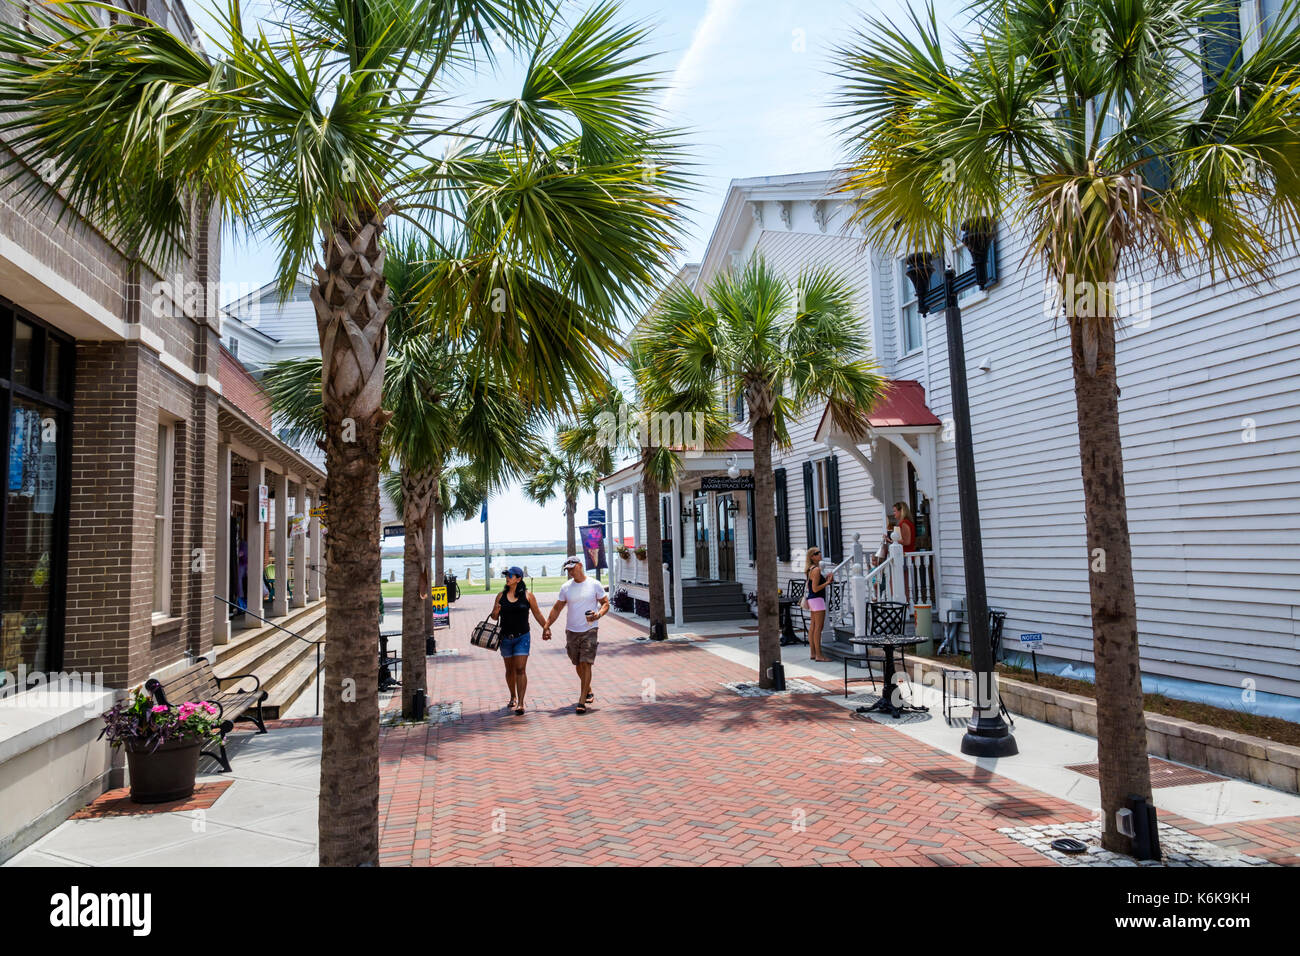 Beaufort South Carolina SC Bay Street Historic Downtown waterfront stores shops alley couple walking palm trees - Stock Image